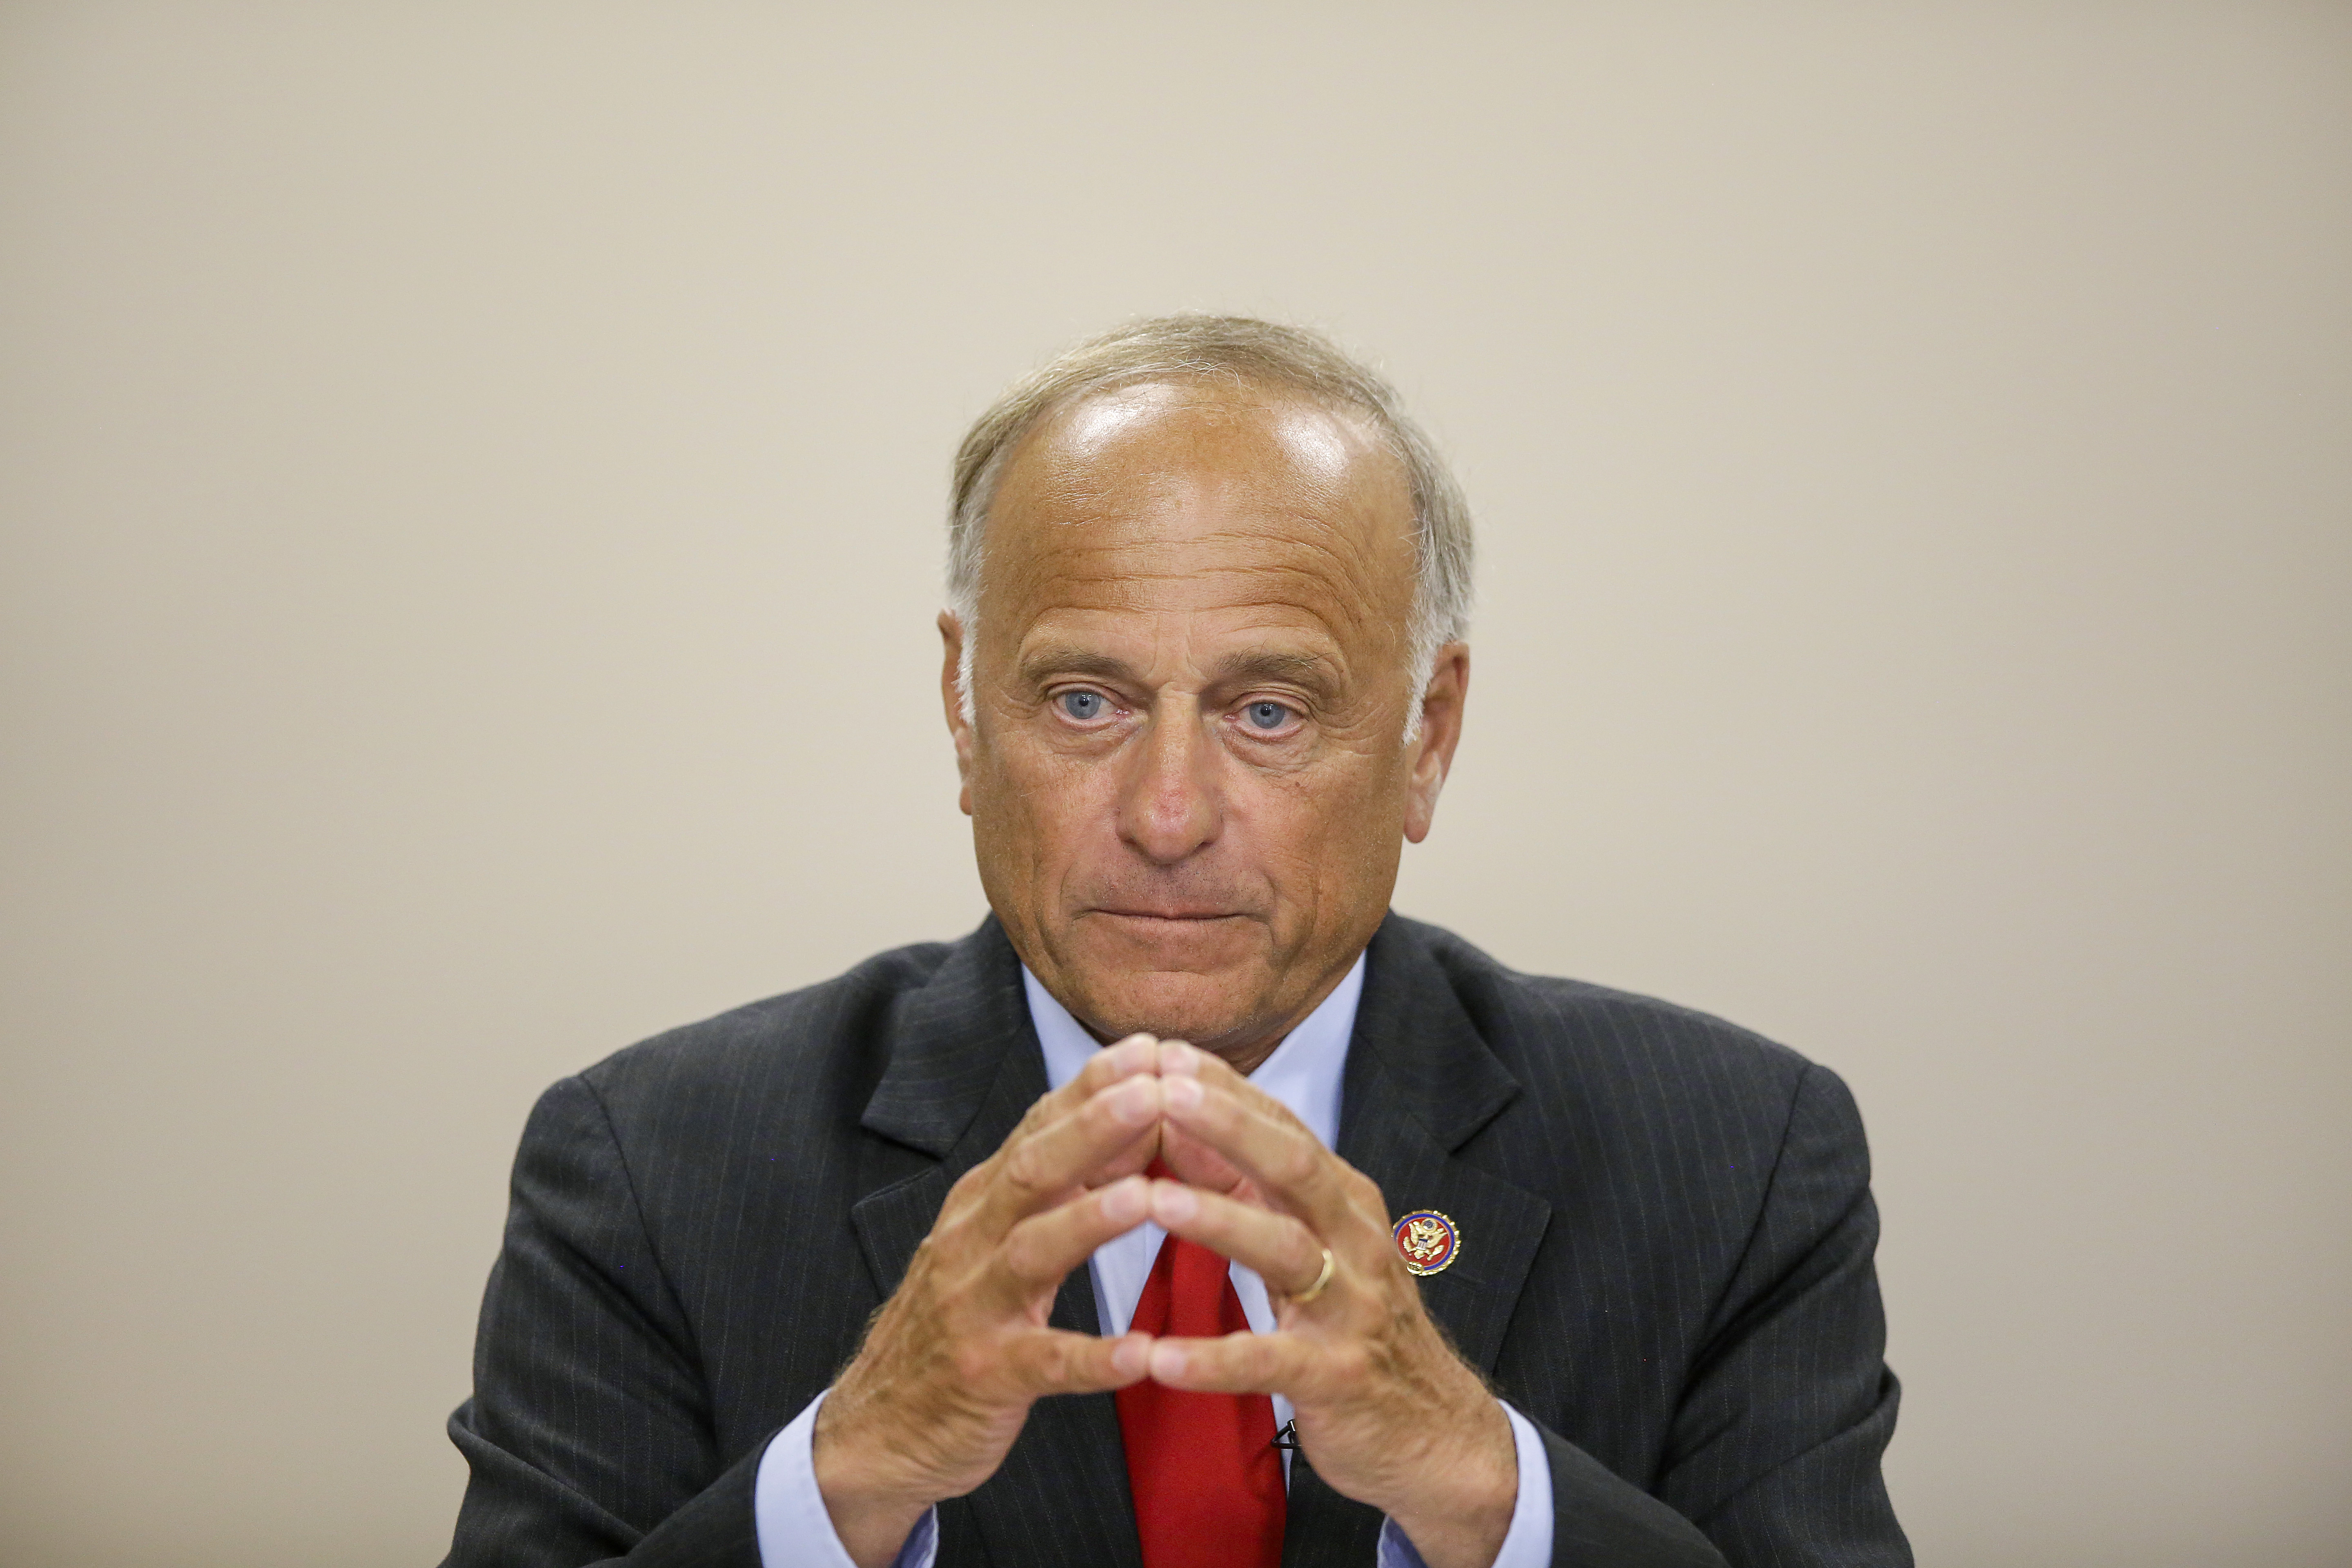 Don't be fooled: Steve King is the GOP